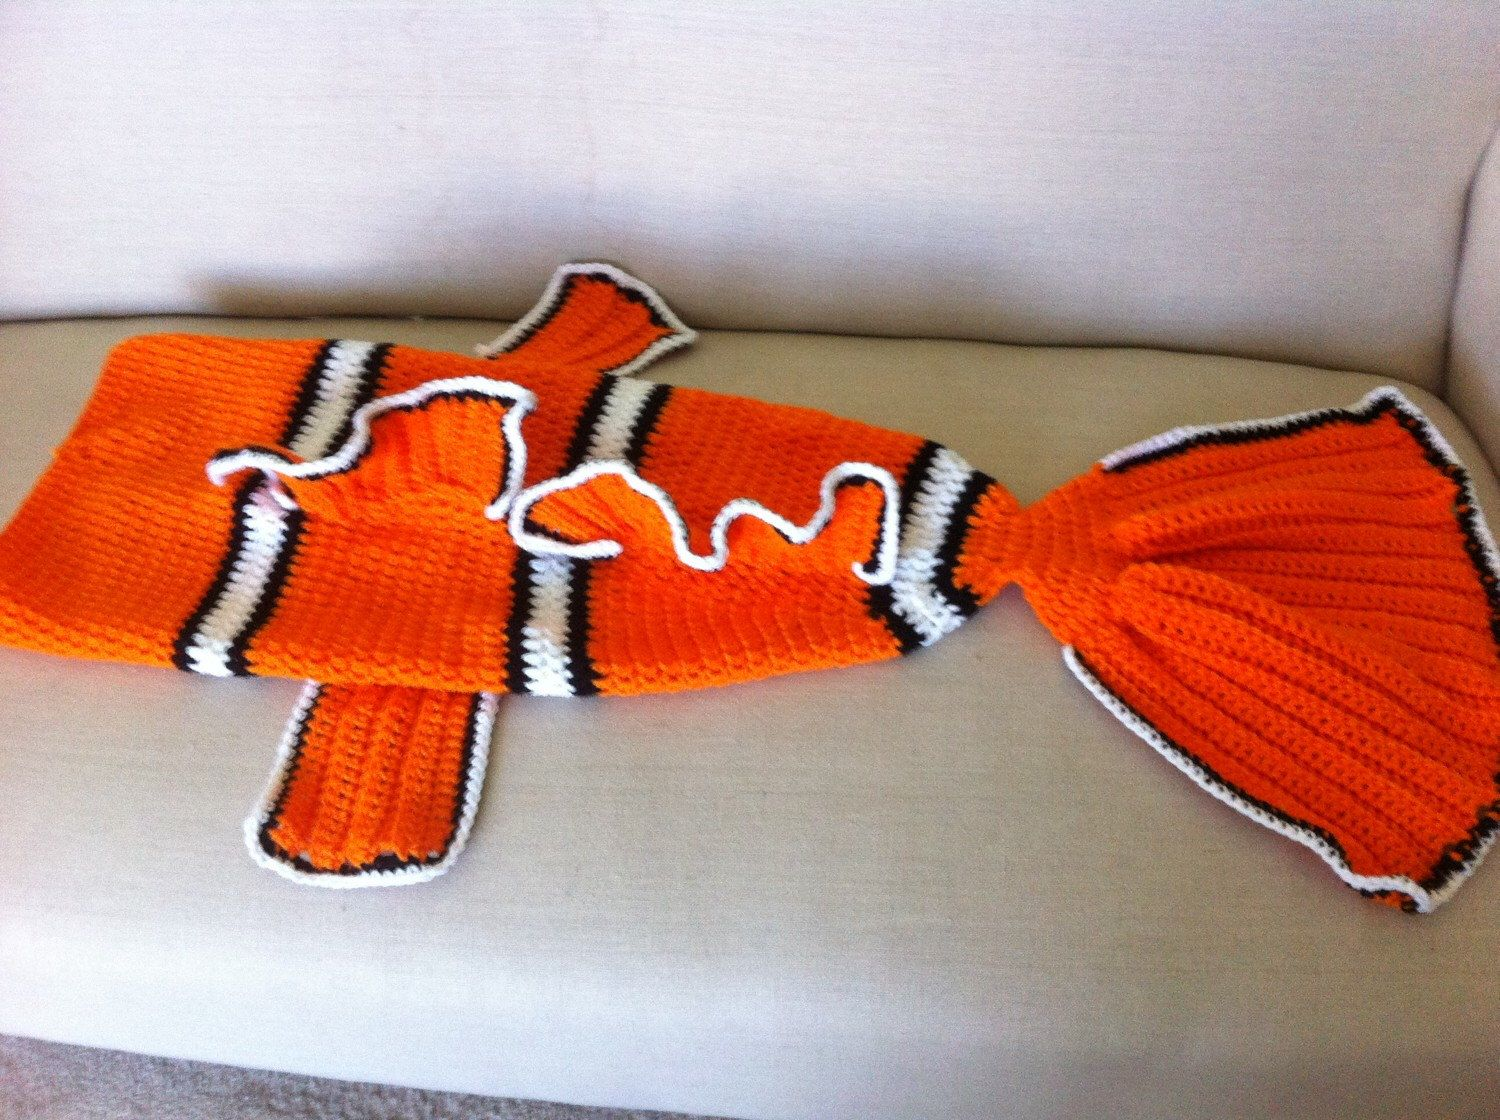 Finding Nemo Blanket Tail - Cocoon - Clown Fish - Preemie, Child ...